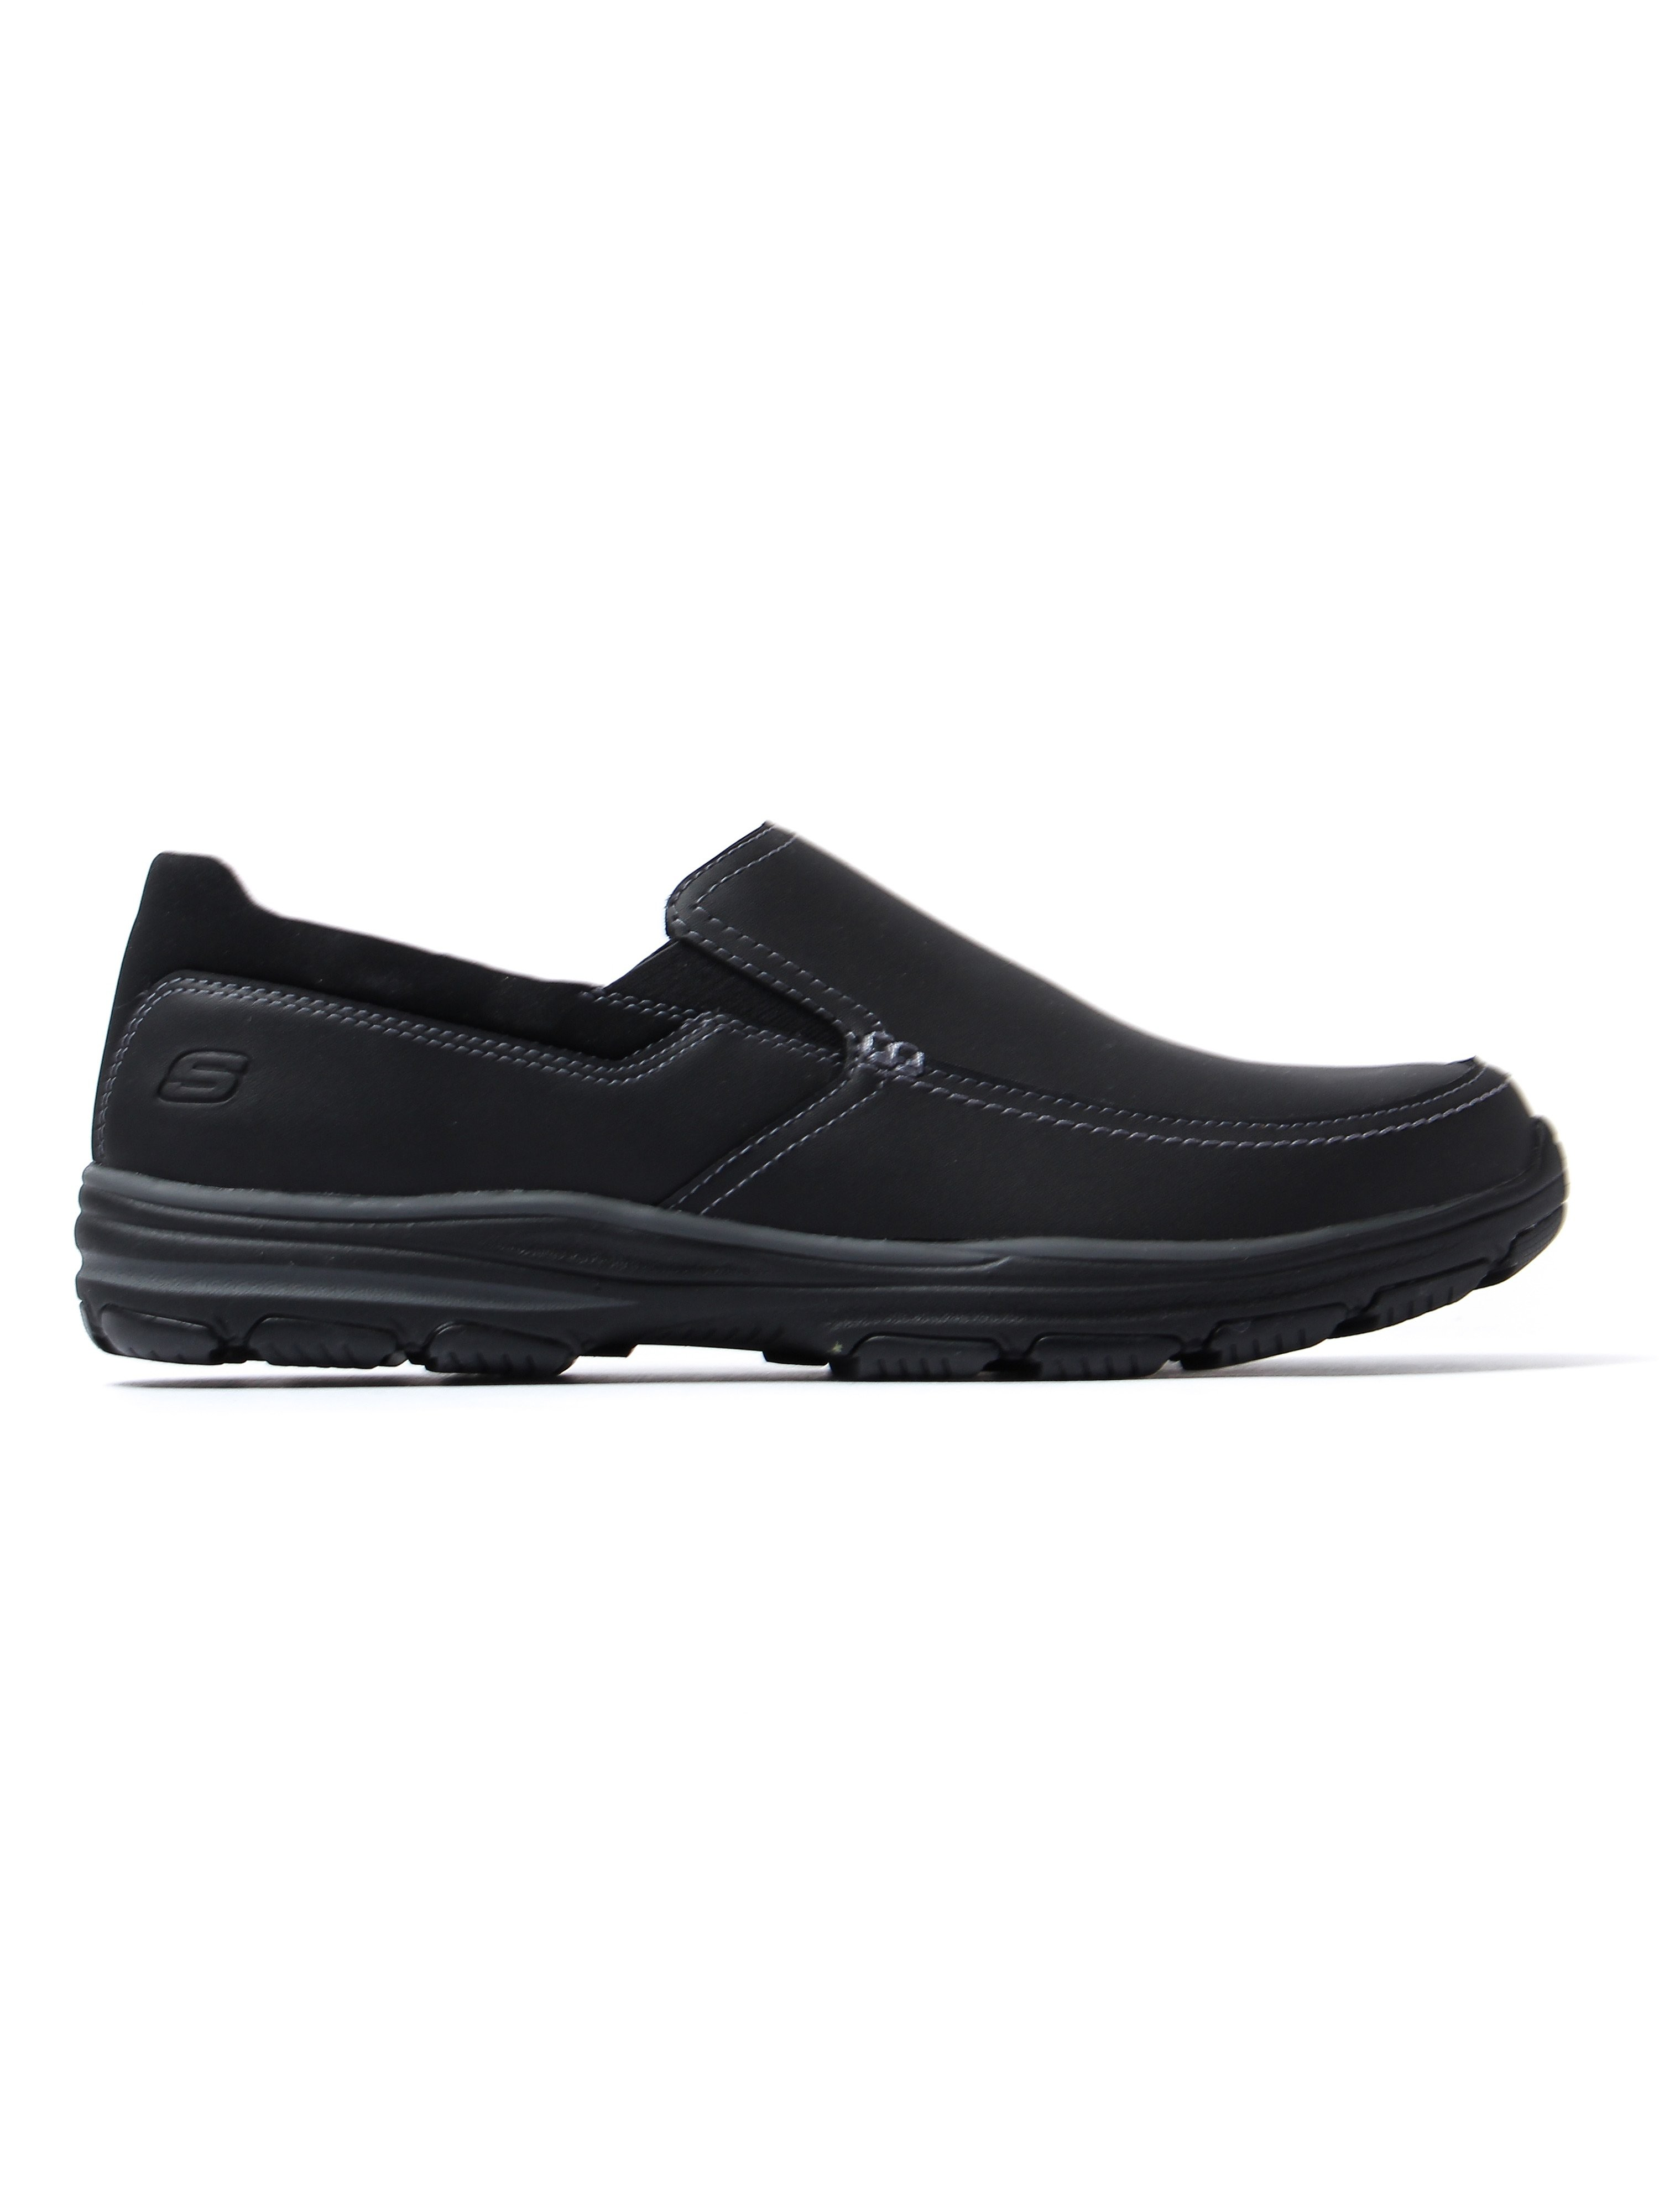 Skechers Men's Garton Venco Loafers - Black Leather